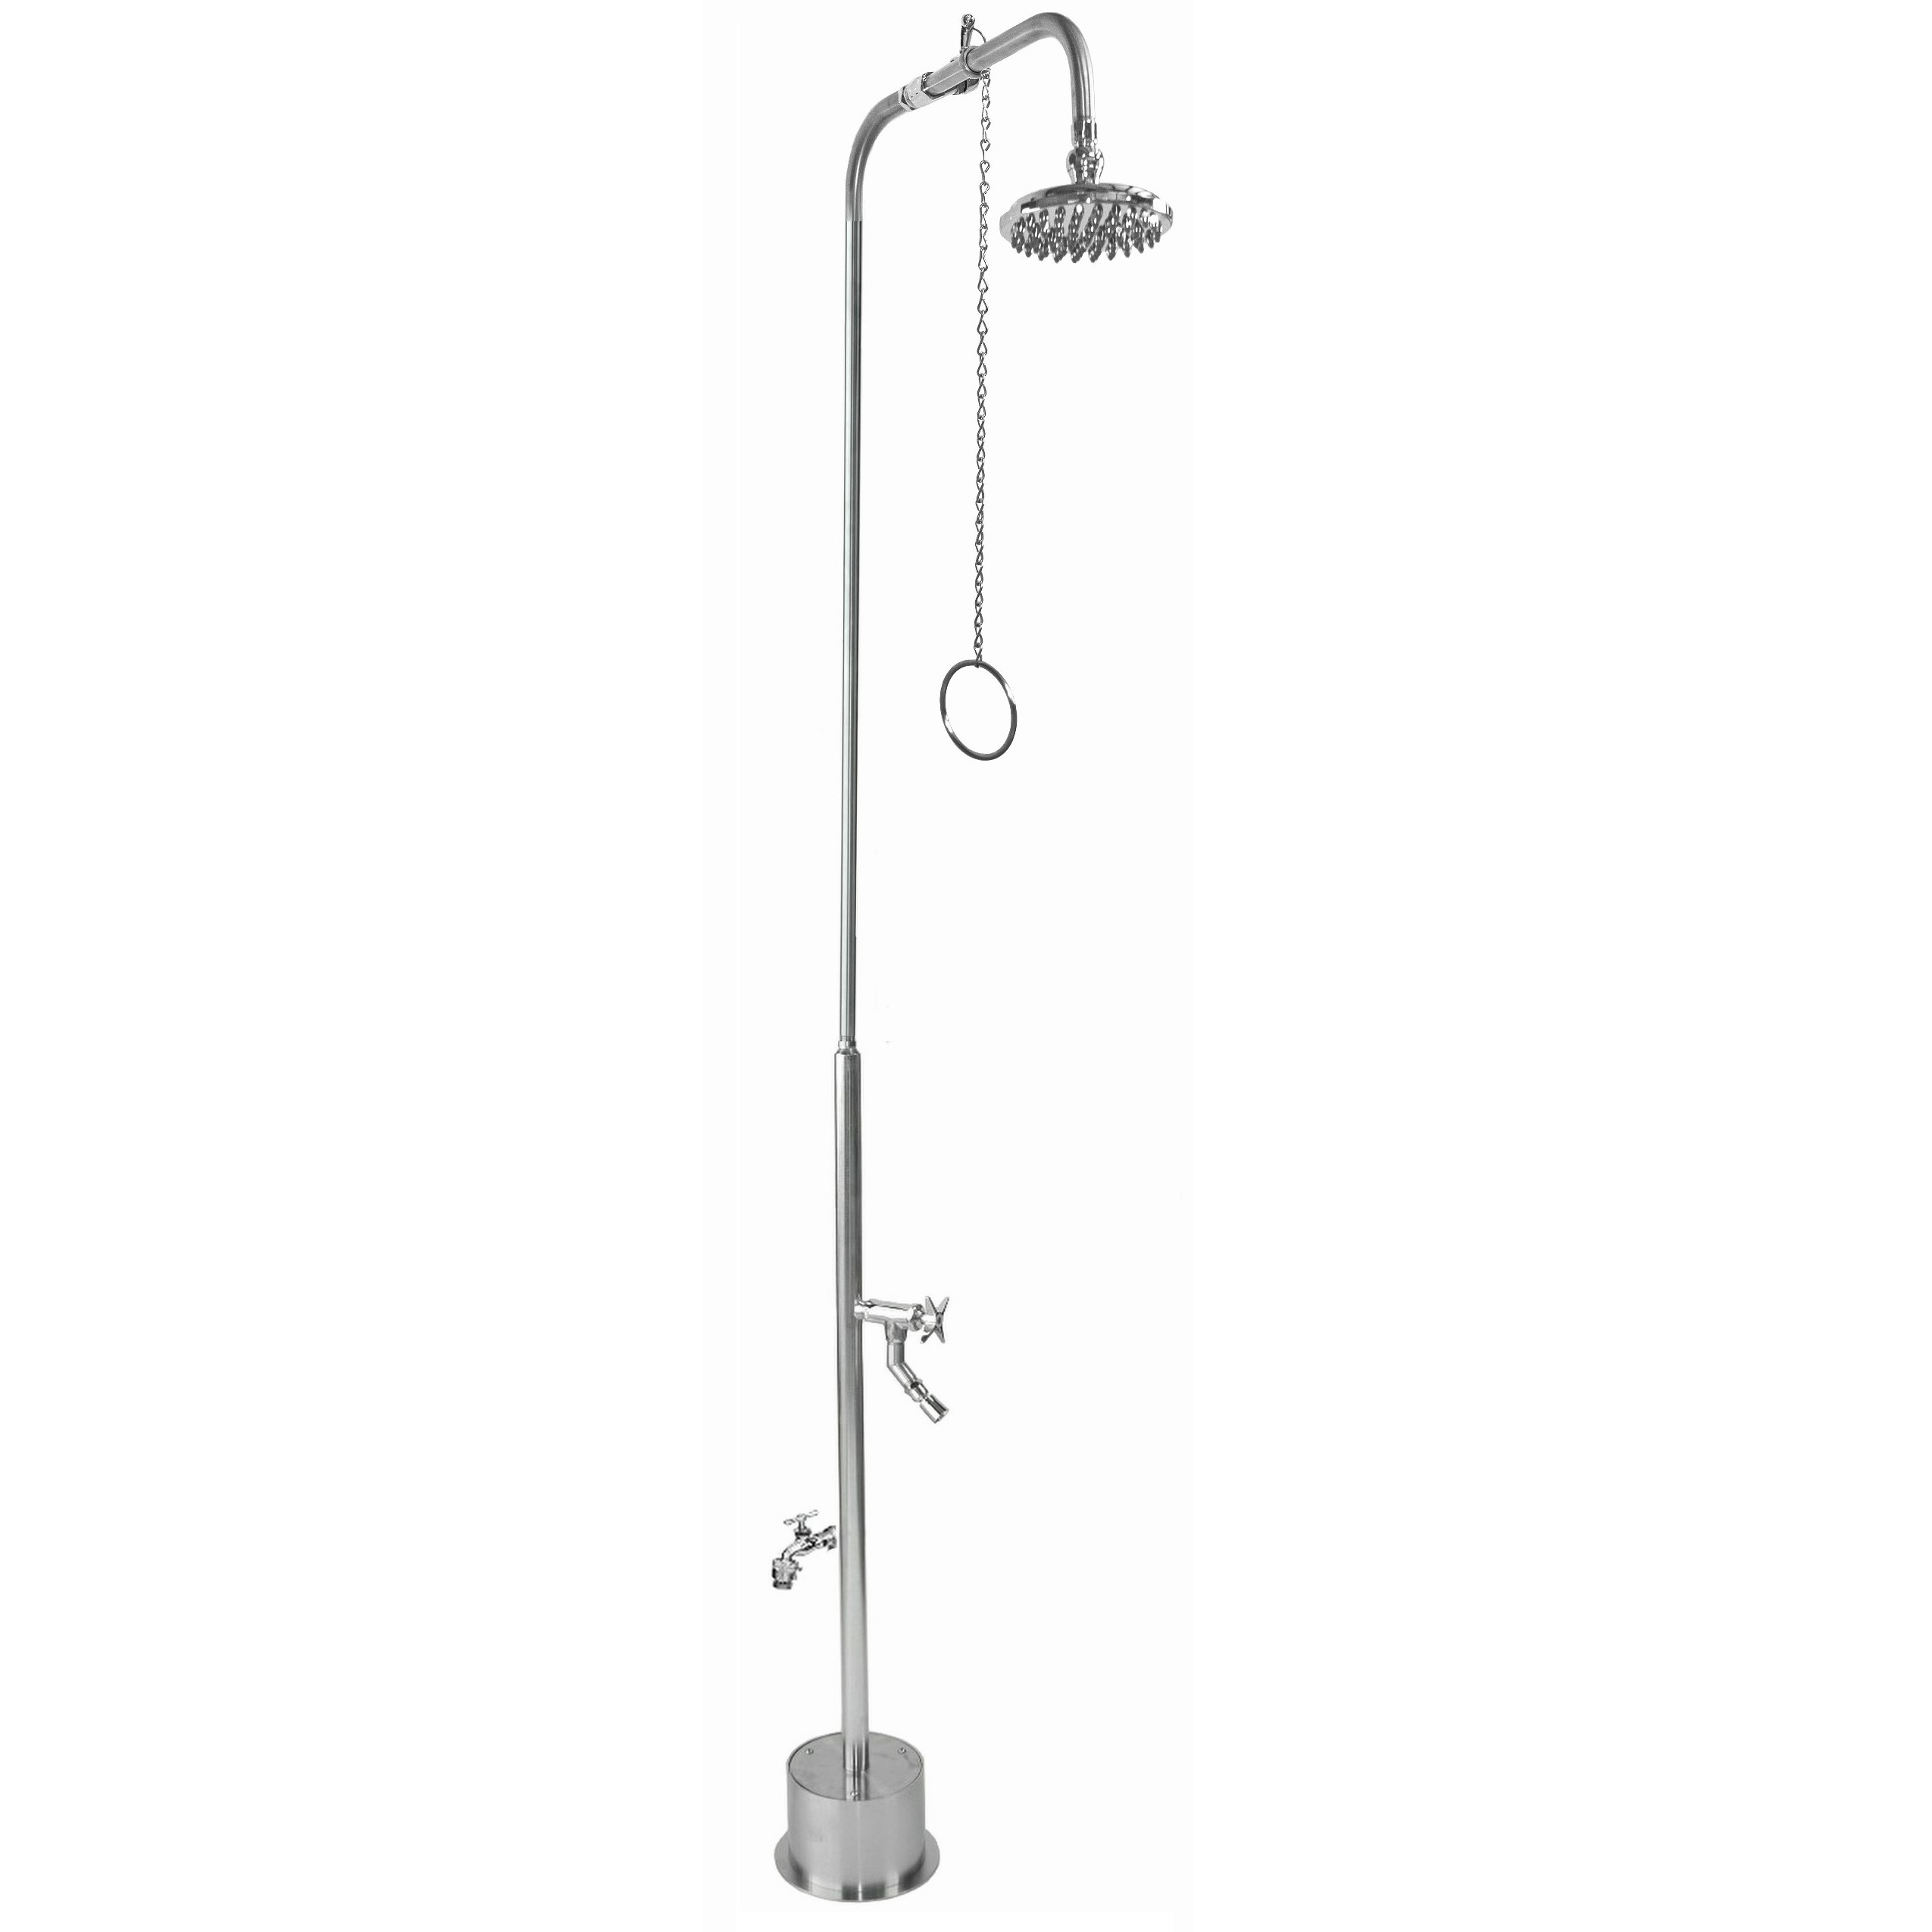 Outdoor Shower Company BS-2000-PCV-CHV Free Standing Single Supply Shower